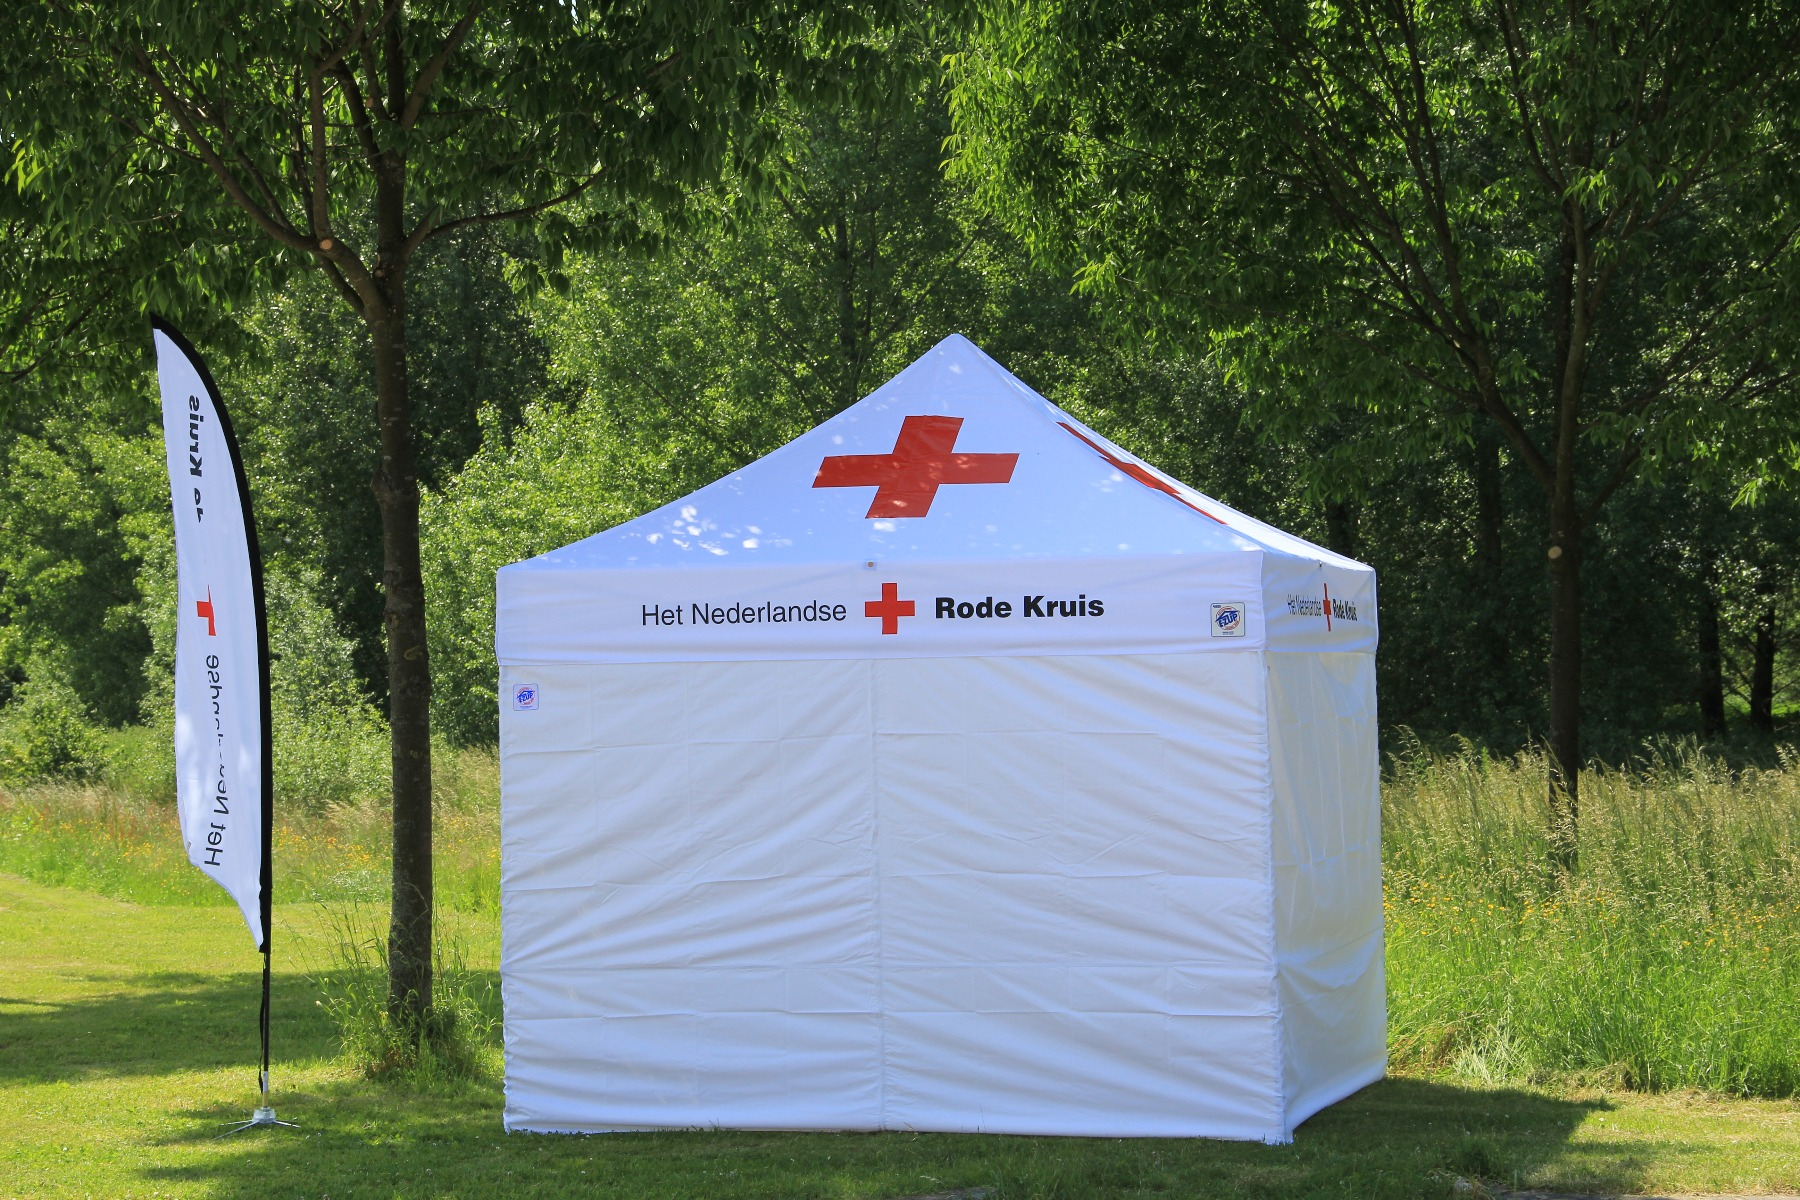 Red Cross Nederland by E-Z UP